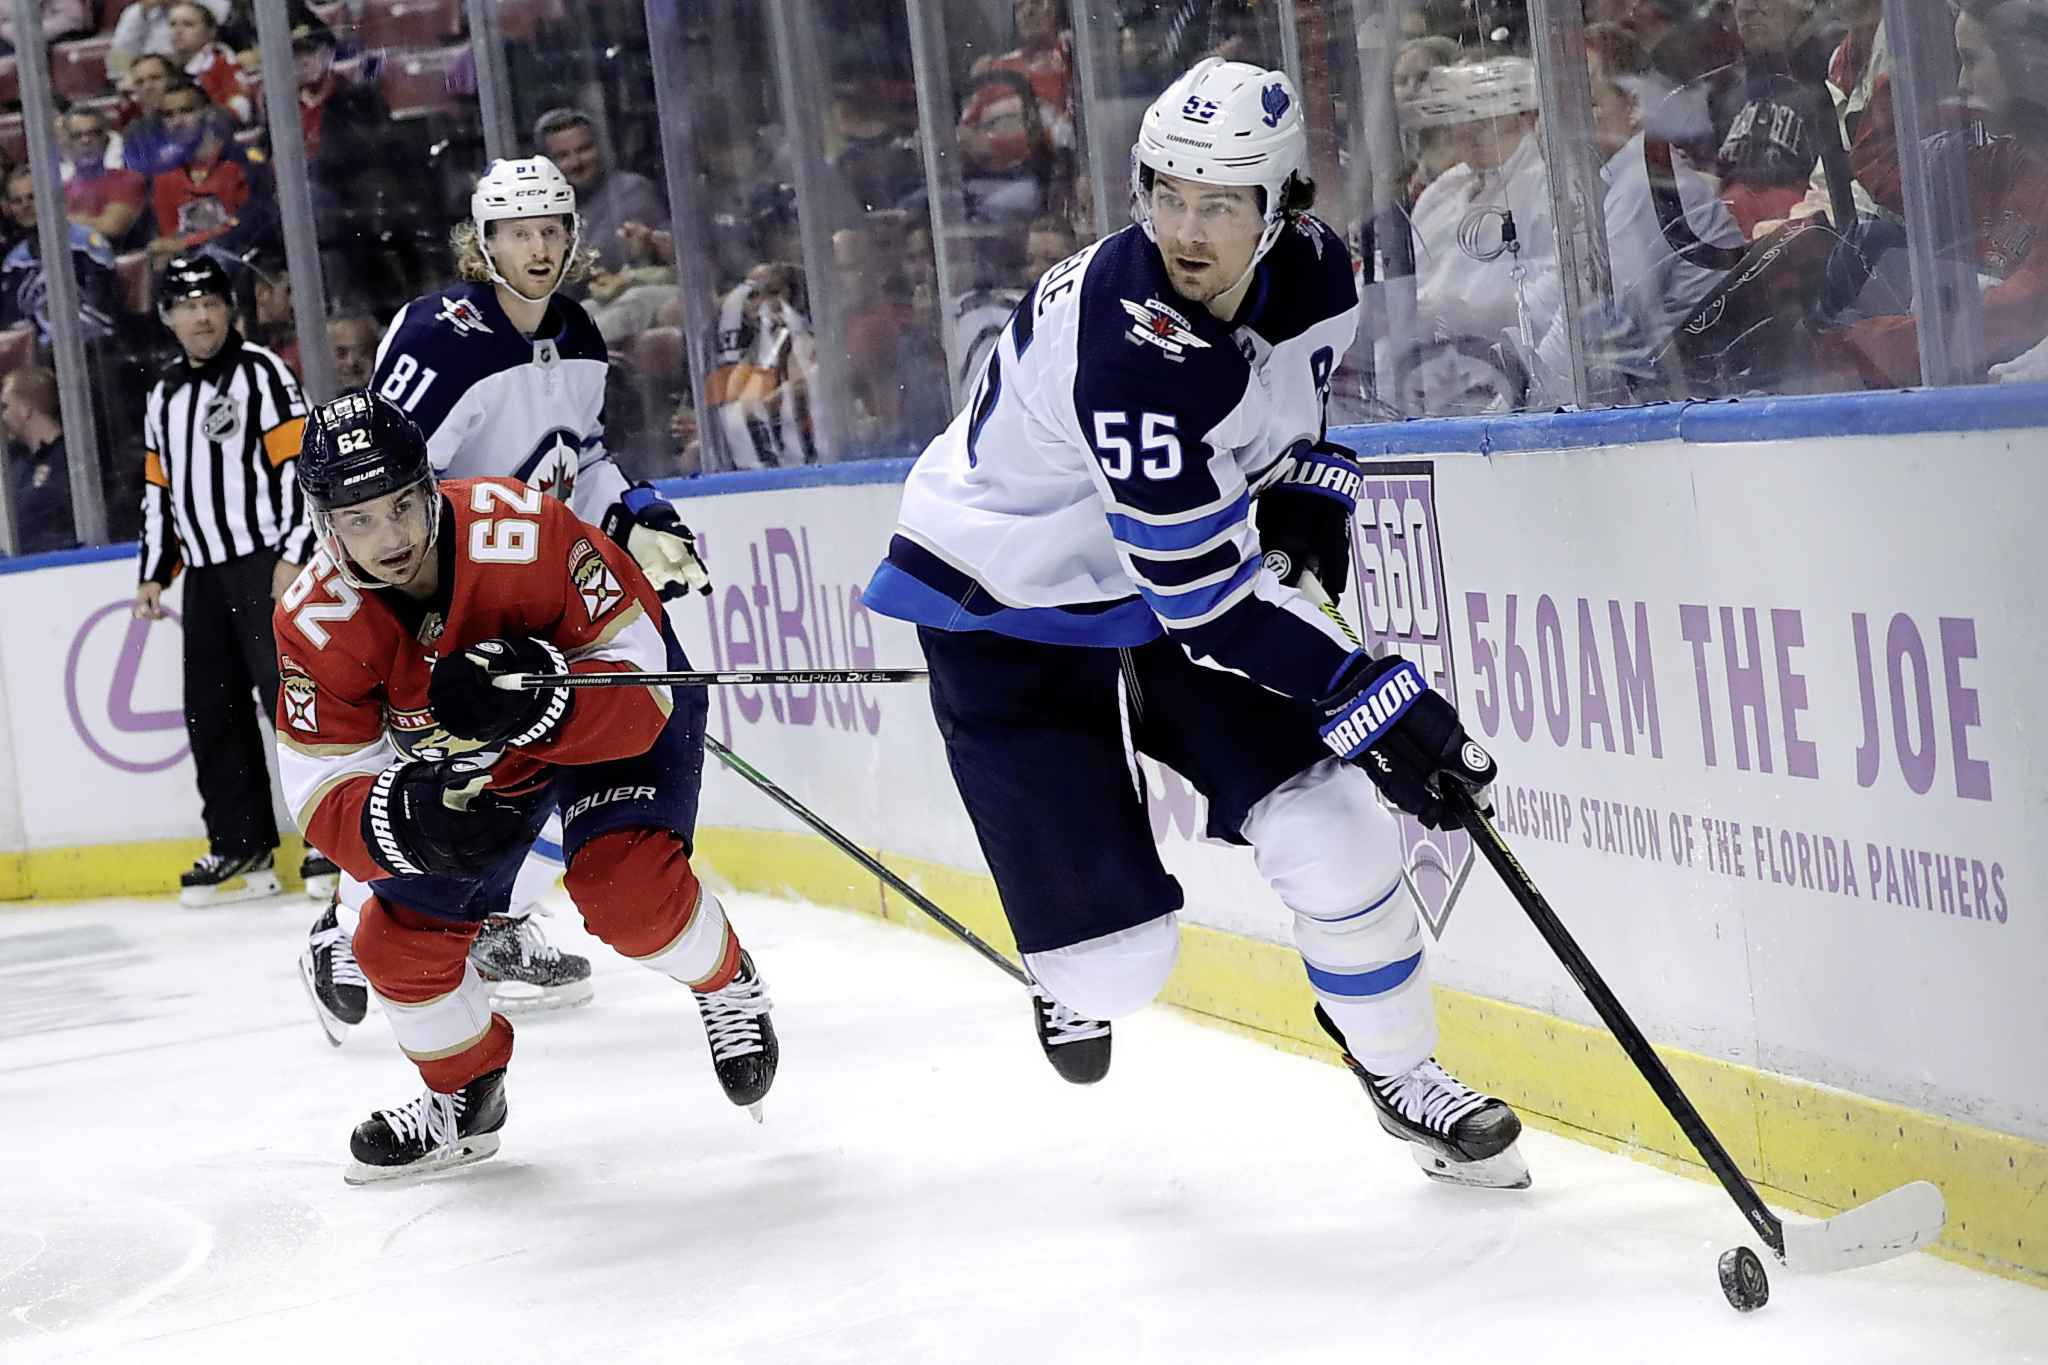 Winnipeg Jets centre Mark Scheifele rags the puck as Florida Panthers' Denis Malgin defends during the second period.